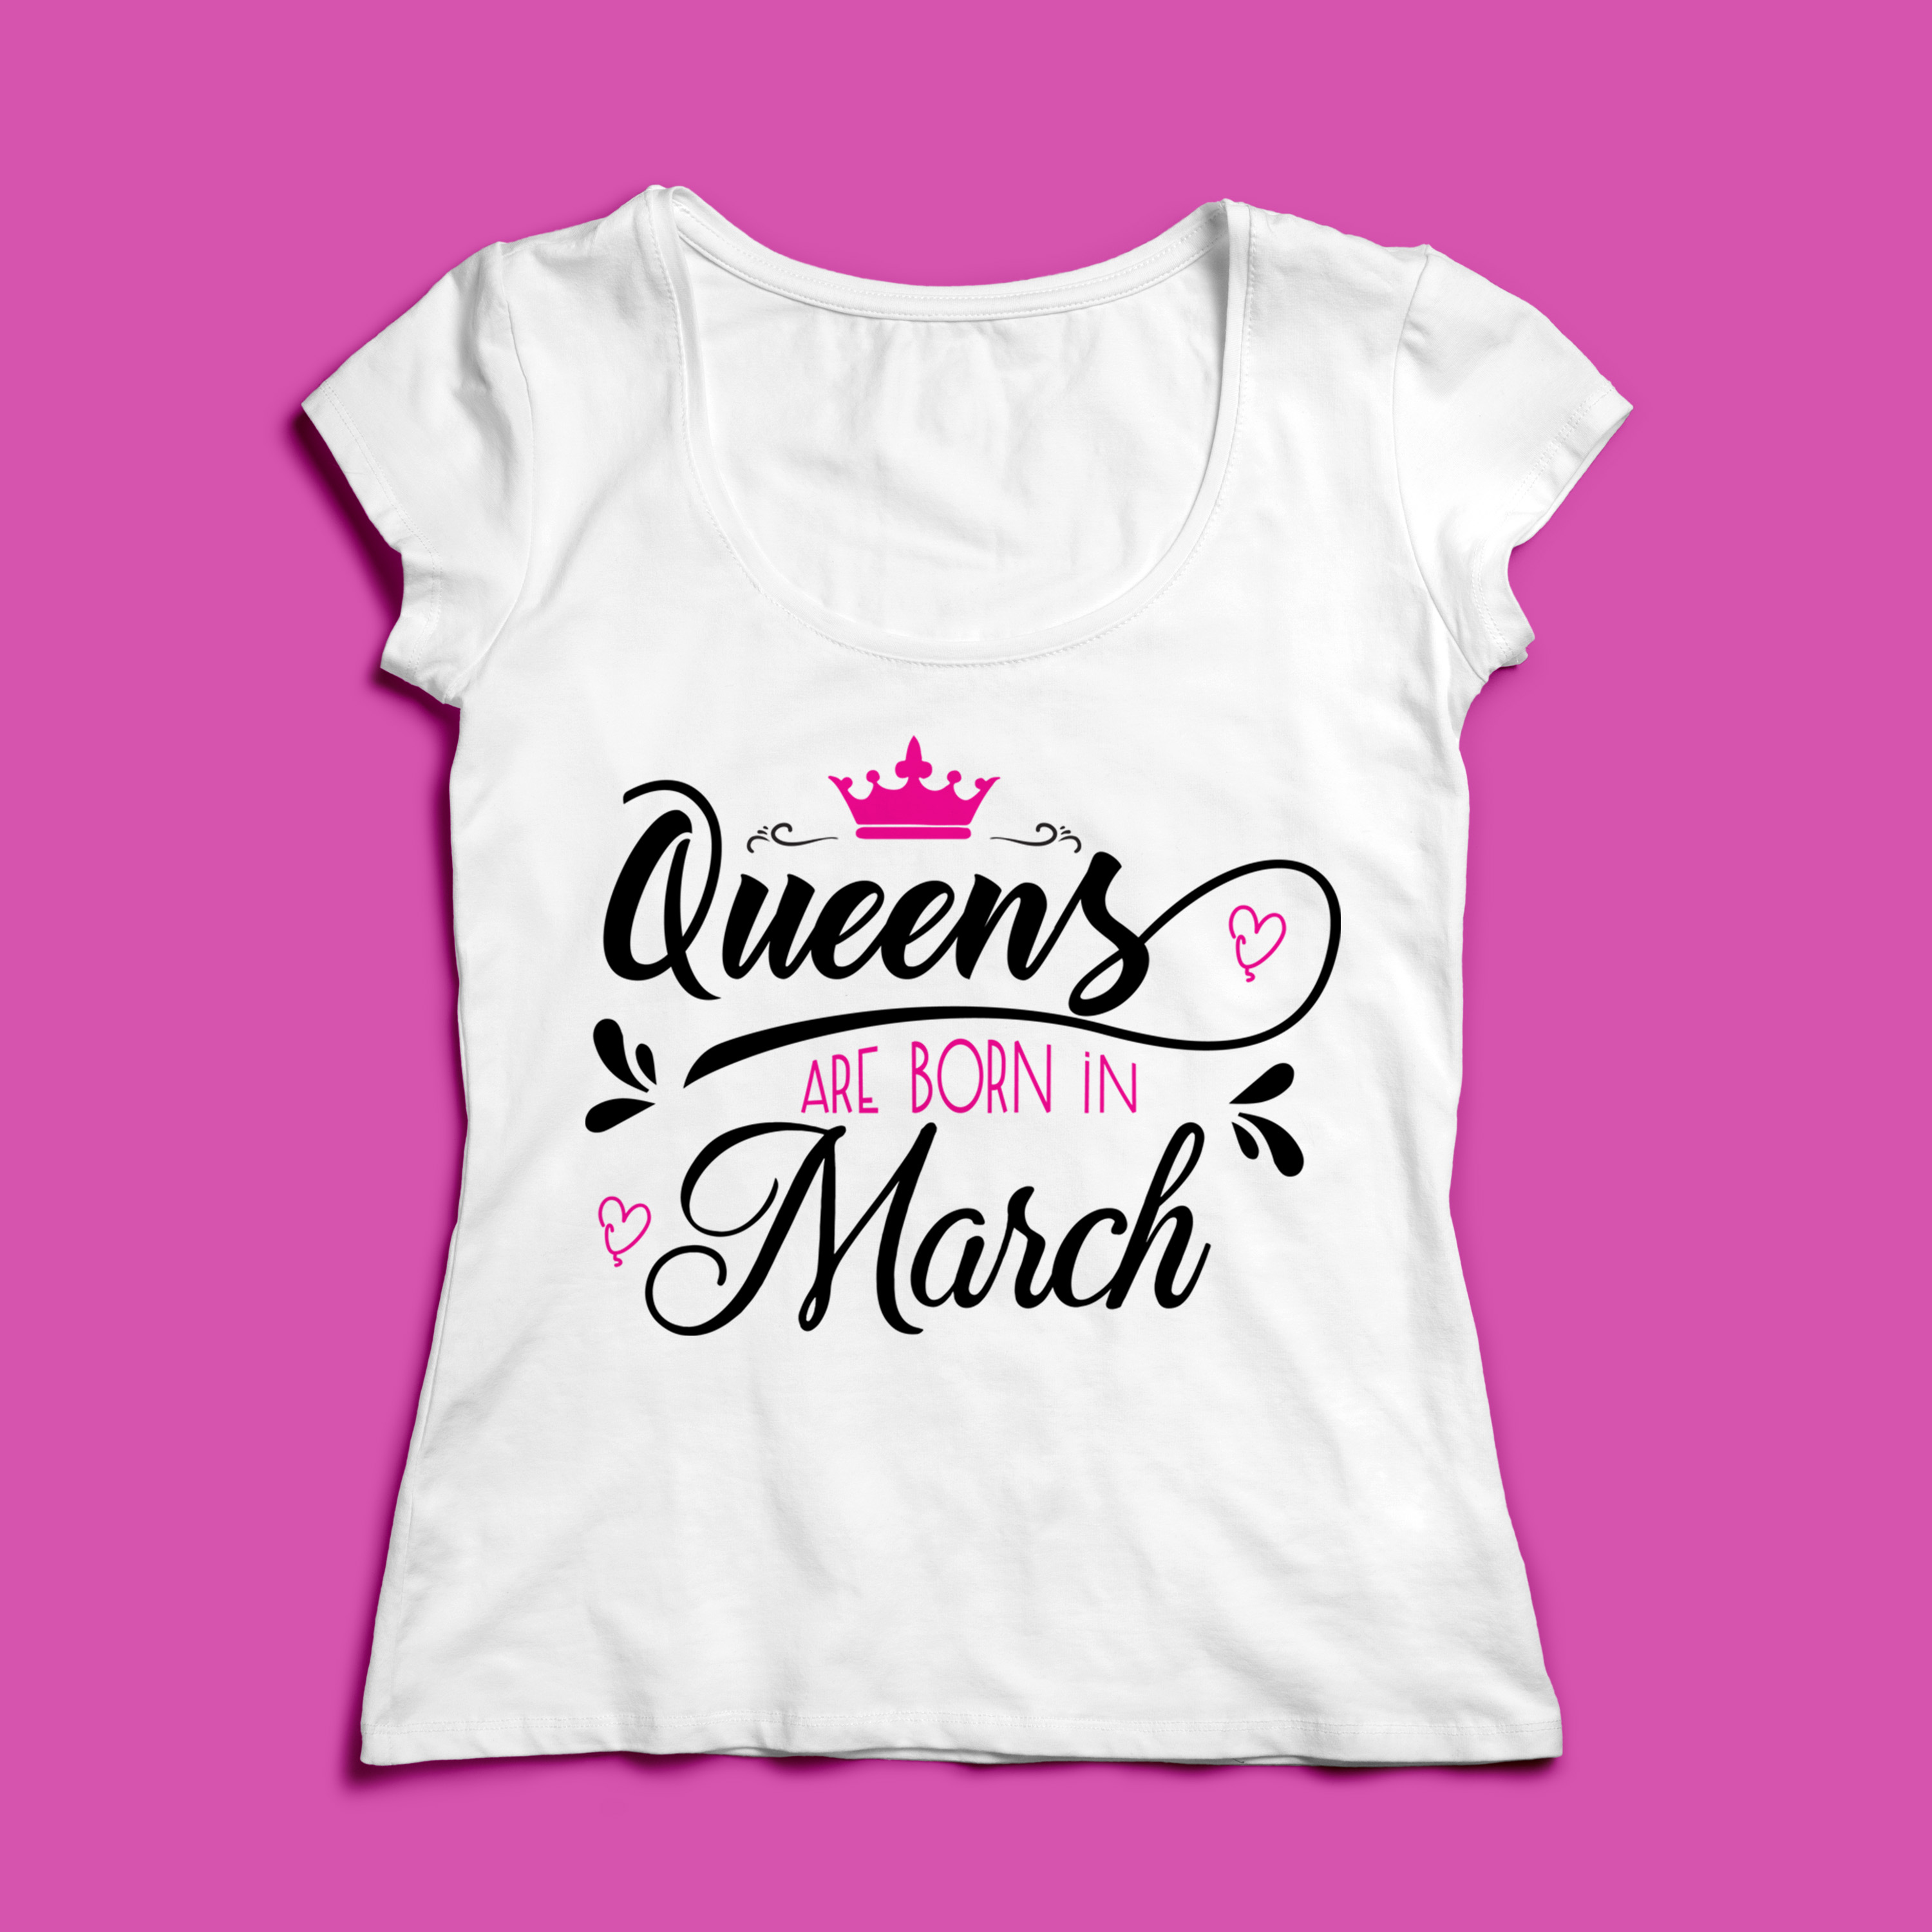 Queens are born in ... Every 12 months Svg,Dxf,Png,Jpg,Eps v example image 8